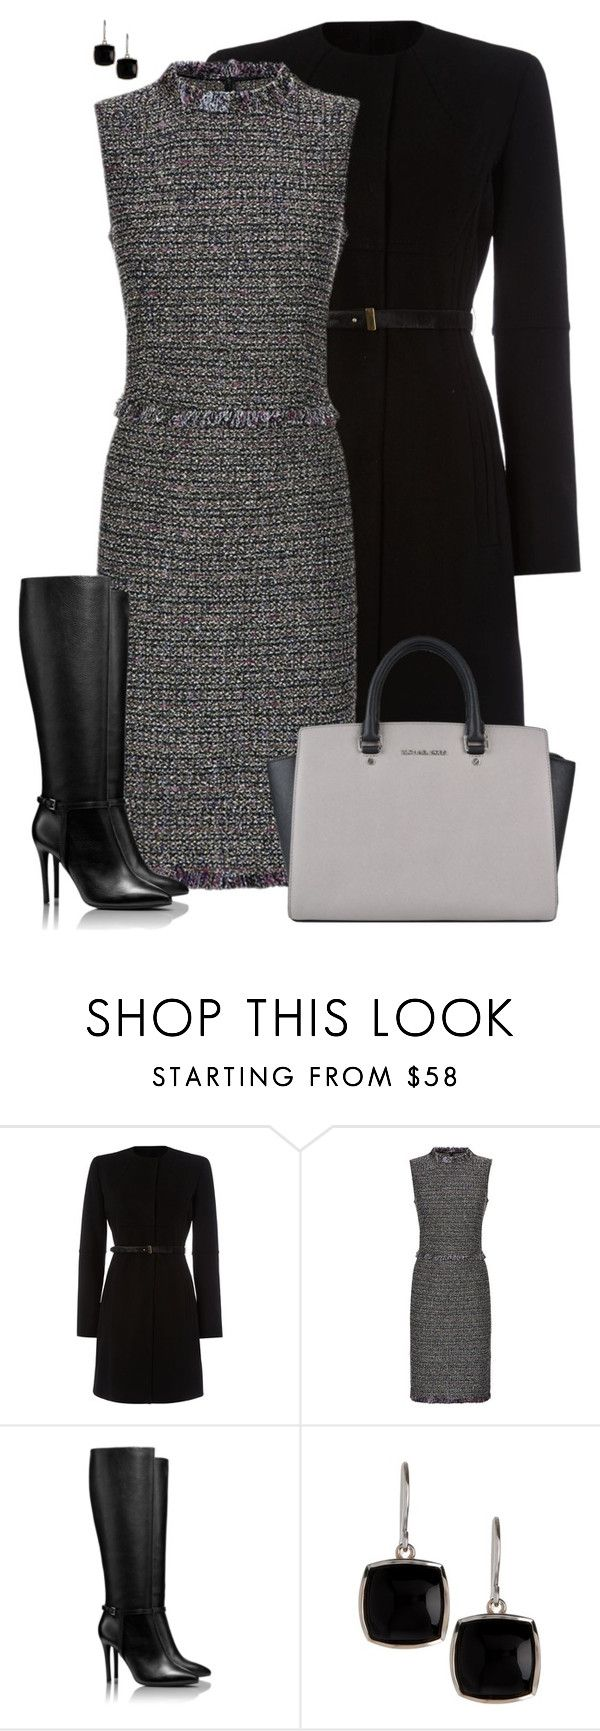 """""""Ready for Work!"""" by rleveryday ❤ liked on Polyvore featuring Marella, St. John, Tory Burch, Argento Vivo, MICHAEL Michael Kors, workoutfit, officeOutfit, professionaloutfit and Businessoutfit"""